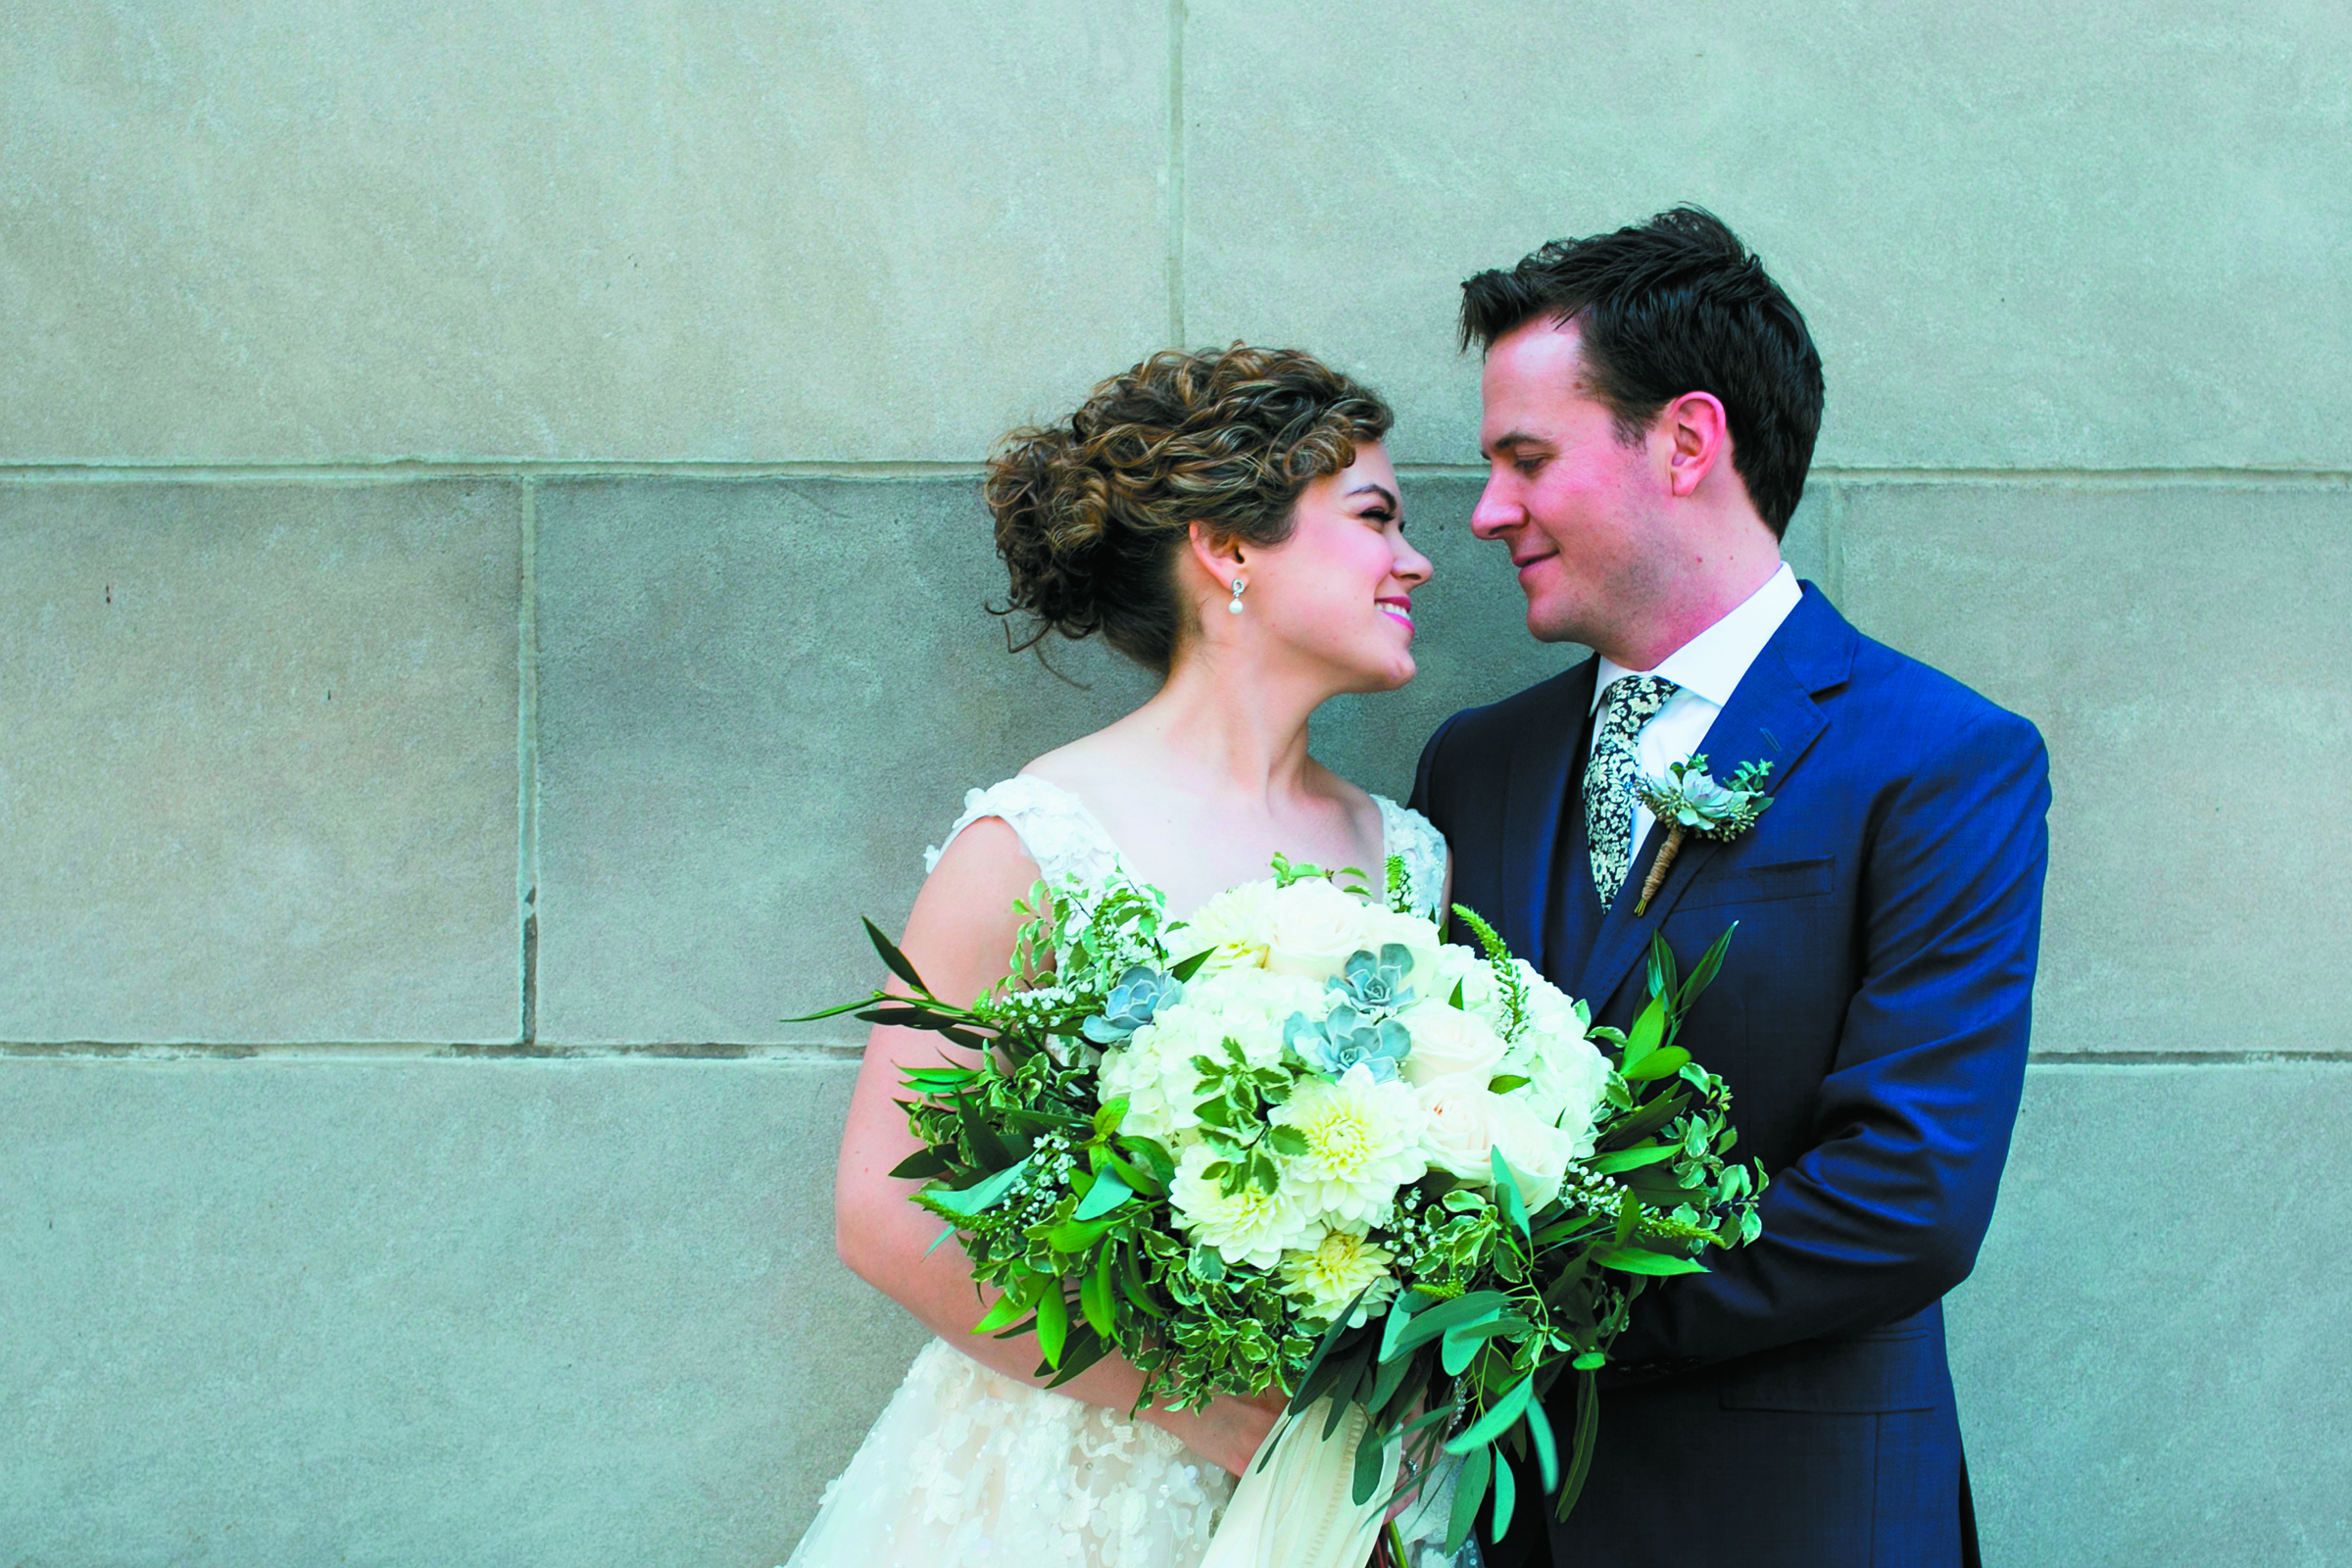 A bride and groom smile at each other before a brick wall. The bride is holding a large bouquet of white hydrangeas.